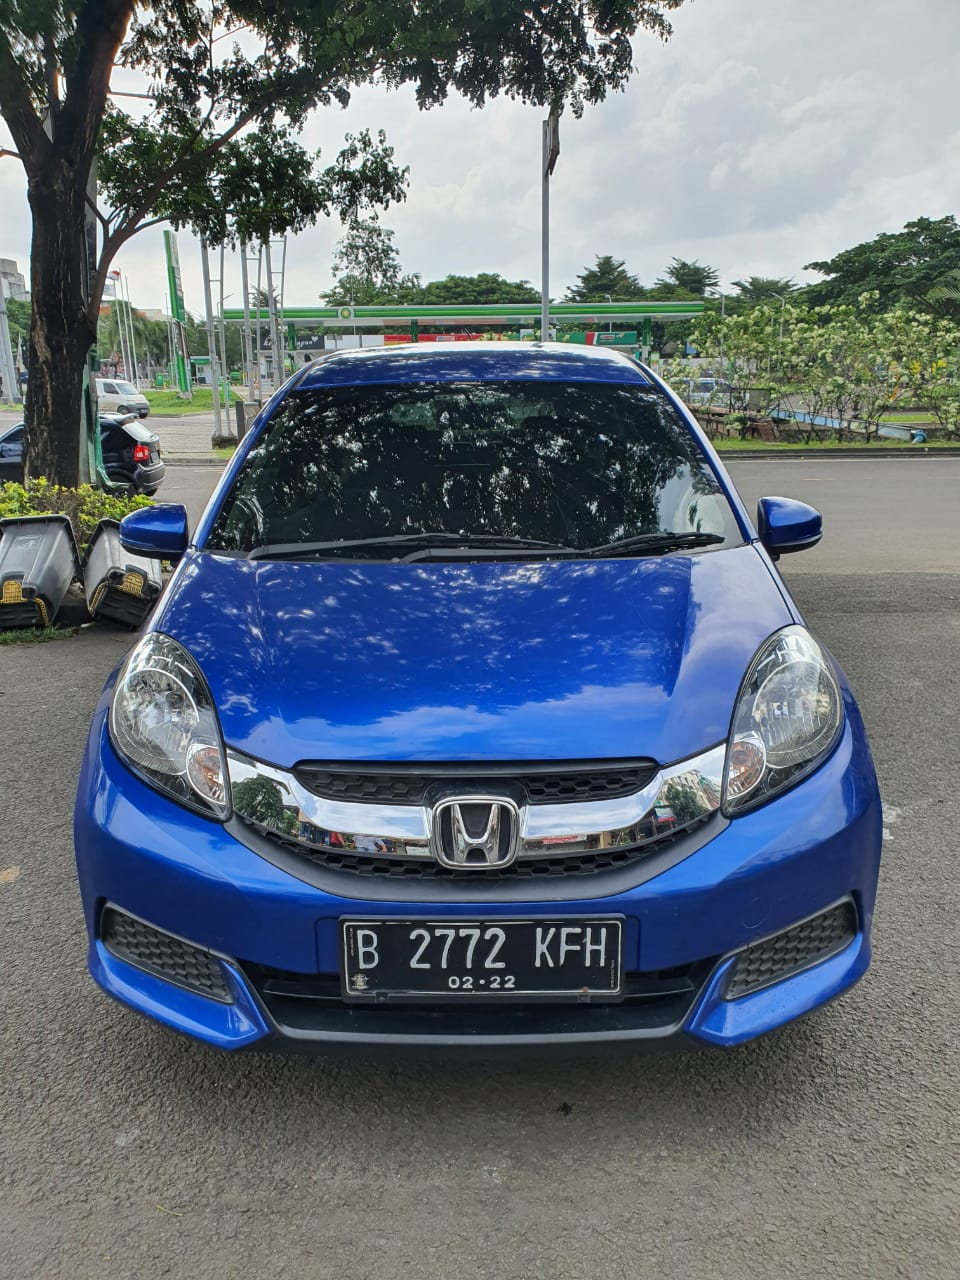 HONDA MOBILIO/TYPE S/MANUAL/2016/BIRU SPORTY METALIK/B 2771 KFH